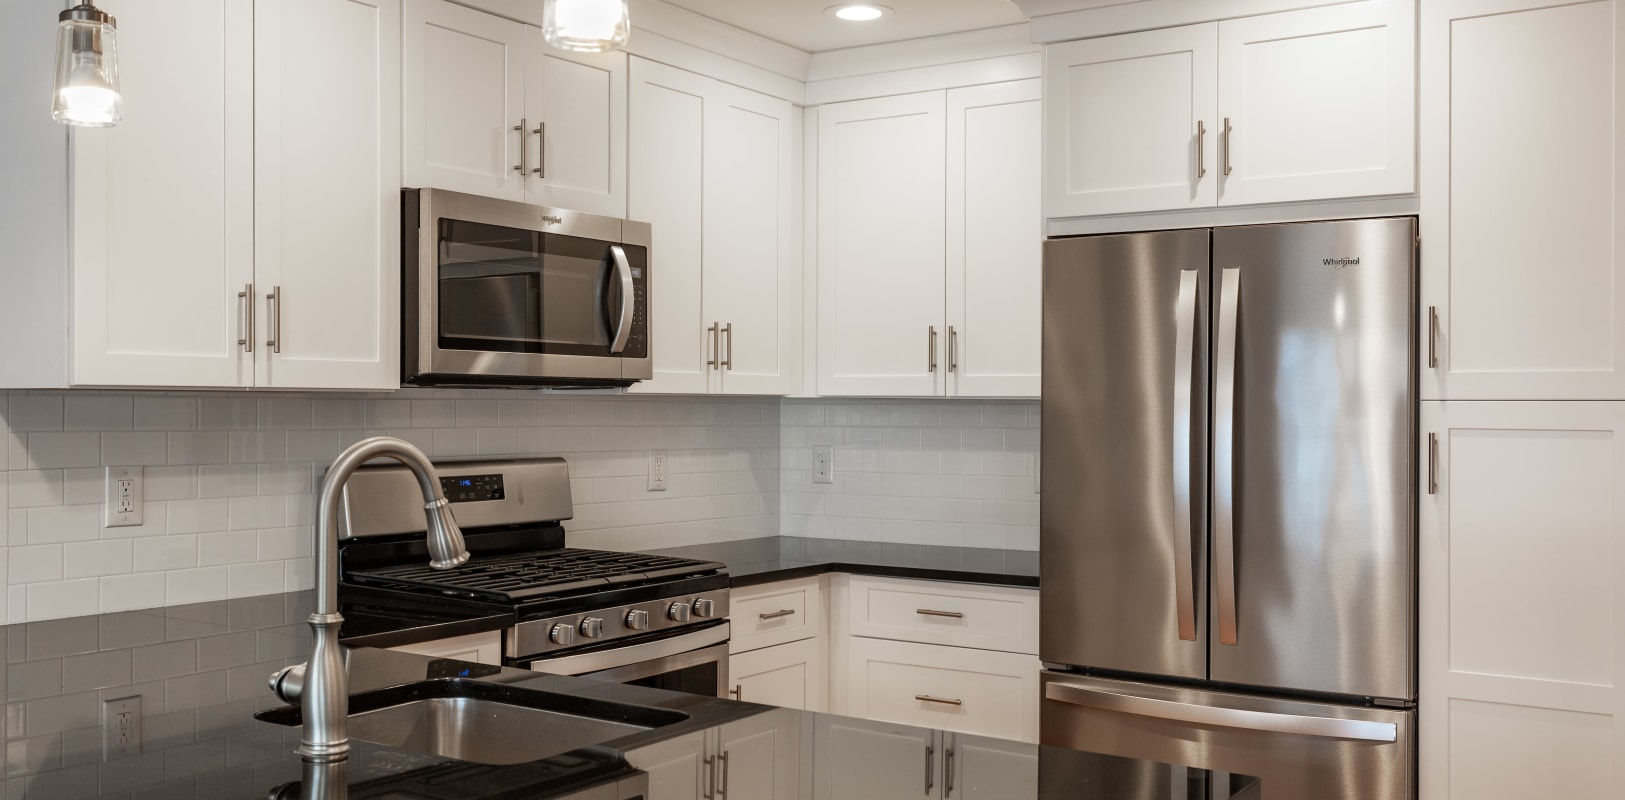 Modern looking kitchen with stainless steel appliances at Zephyr Ridge in Cedar Grove, New Jersey